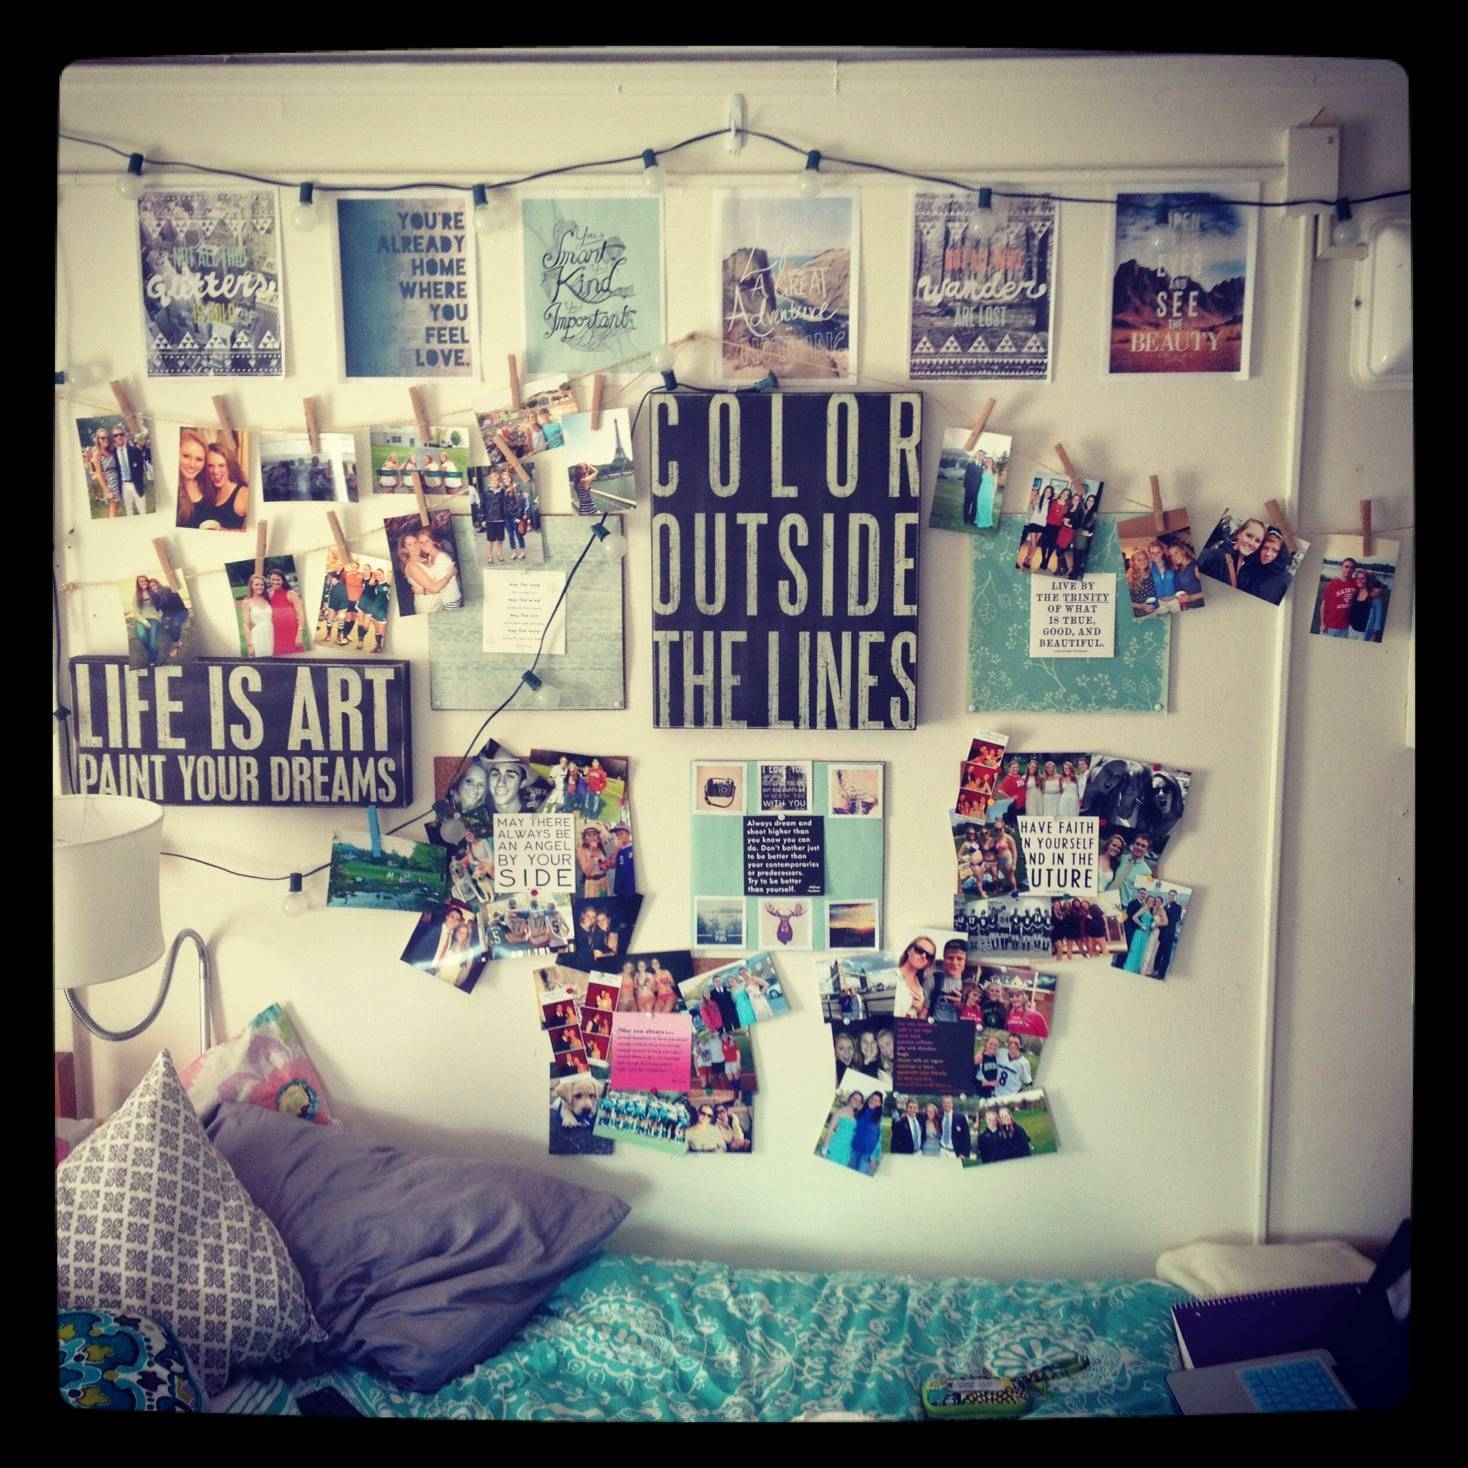 20 Best Decorating Good To Know Images On Pinterest: 20 Best Collection Of College Dorm Wall Art